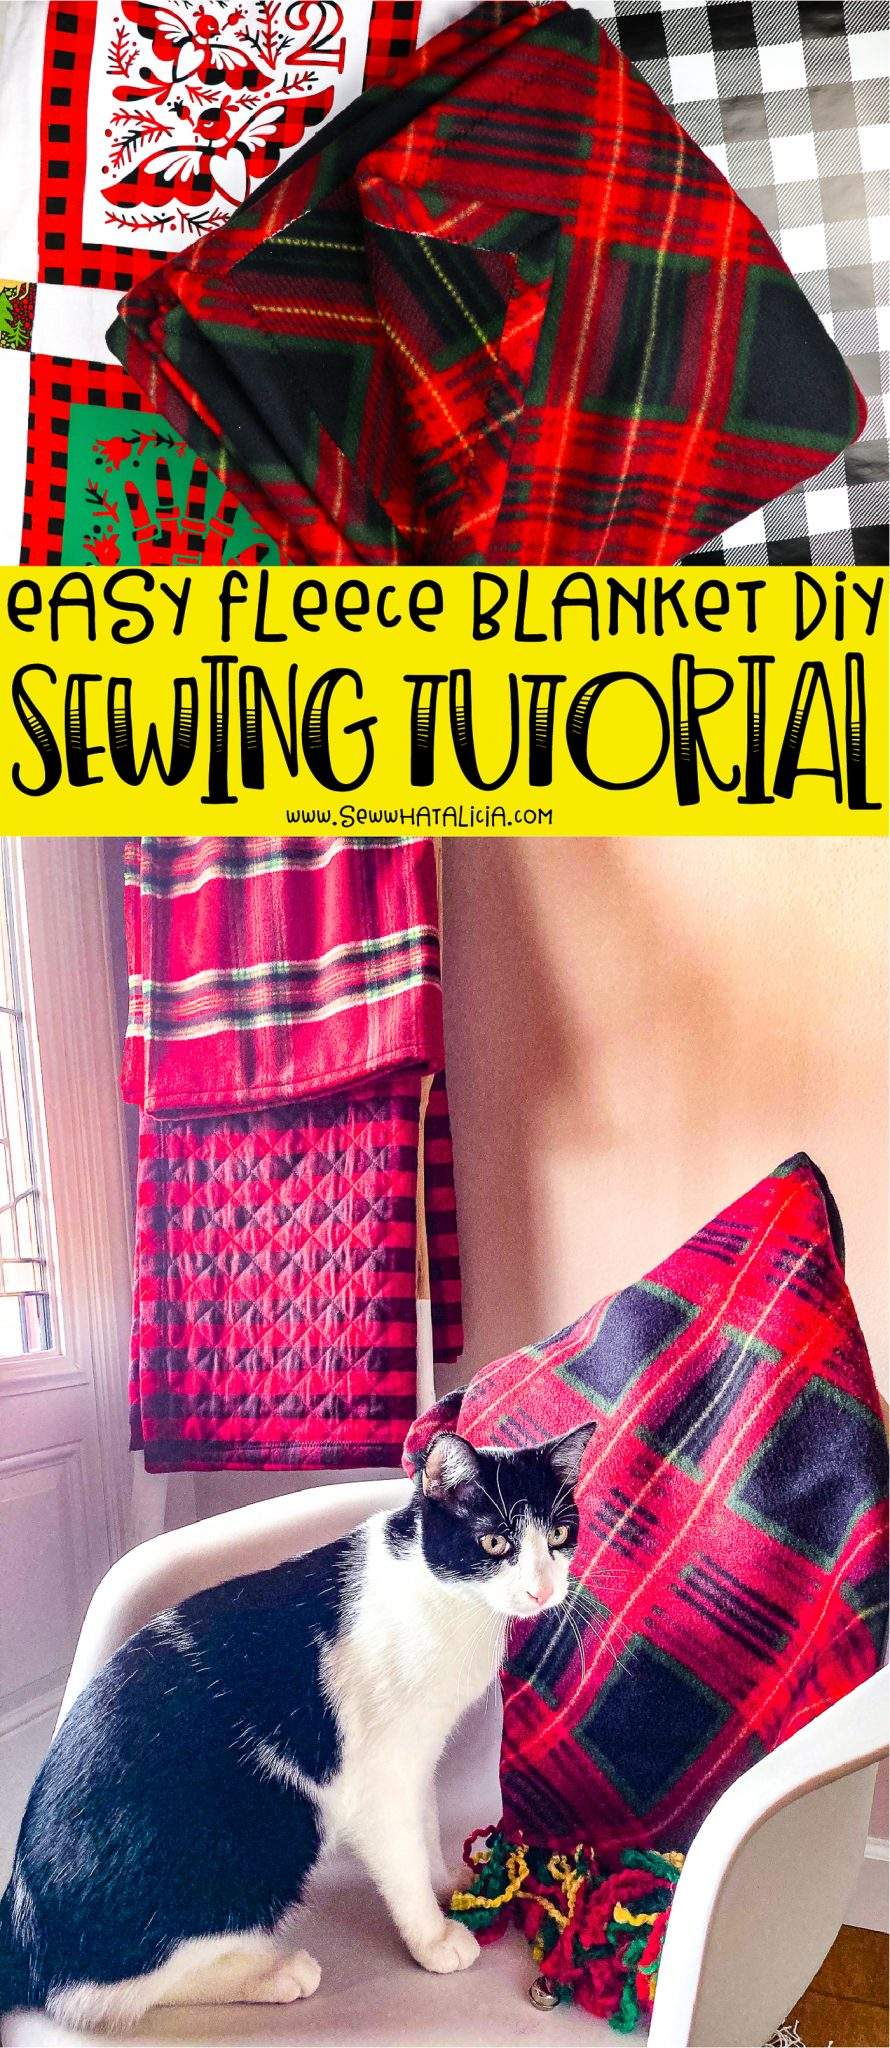 cat on chair with blankets in background, text reading diy easy fleece blanket sewing tutorial, blanket on chair with blankets on ladder in background